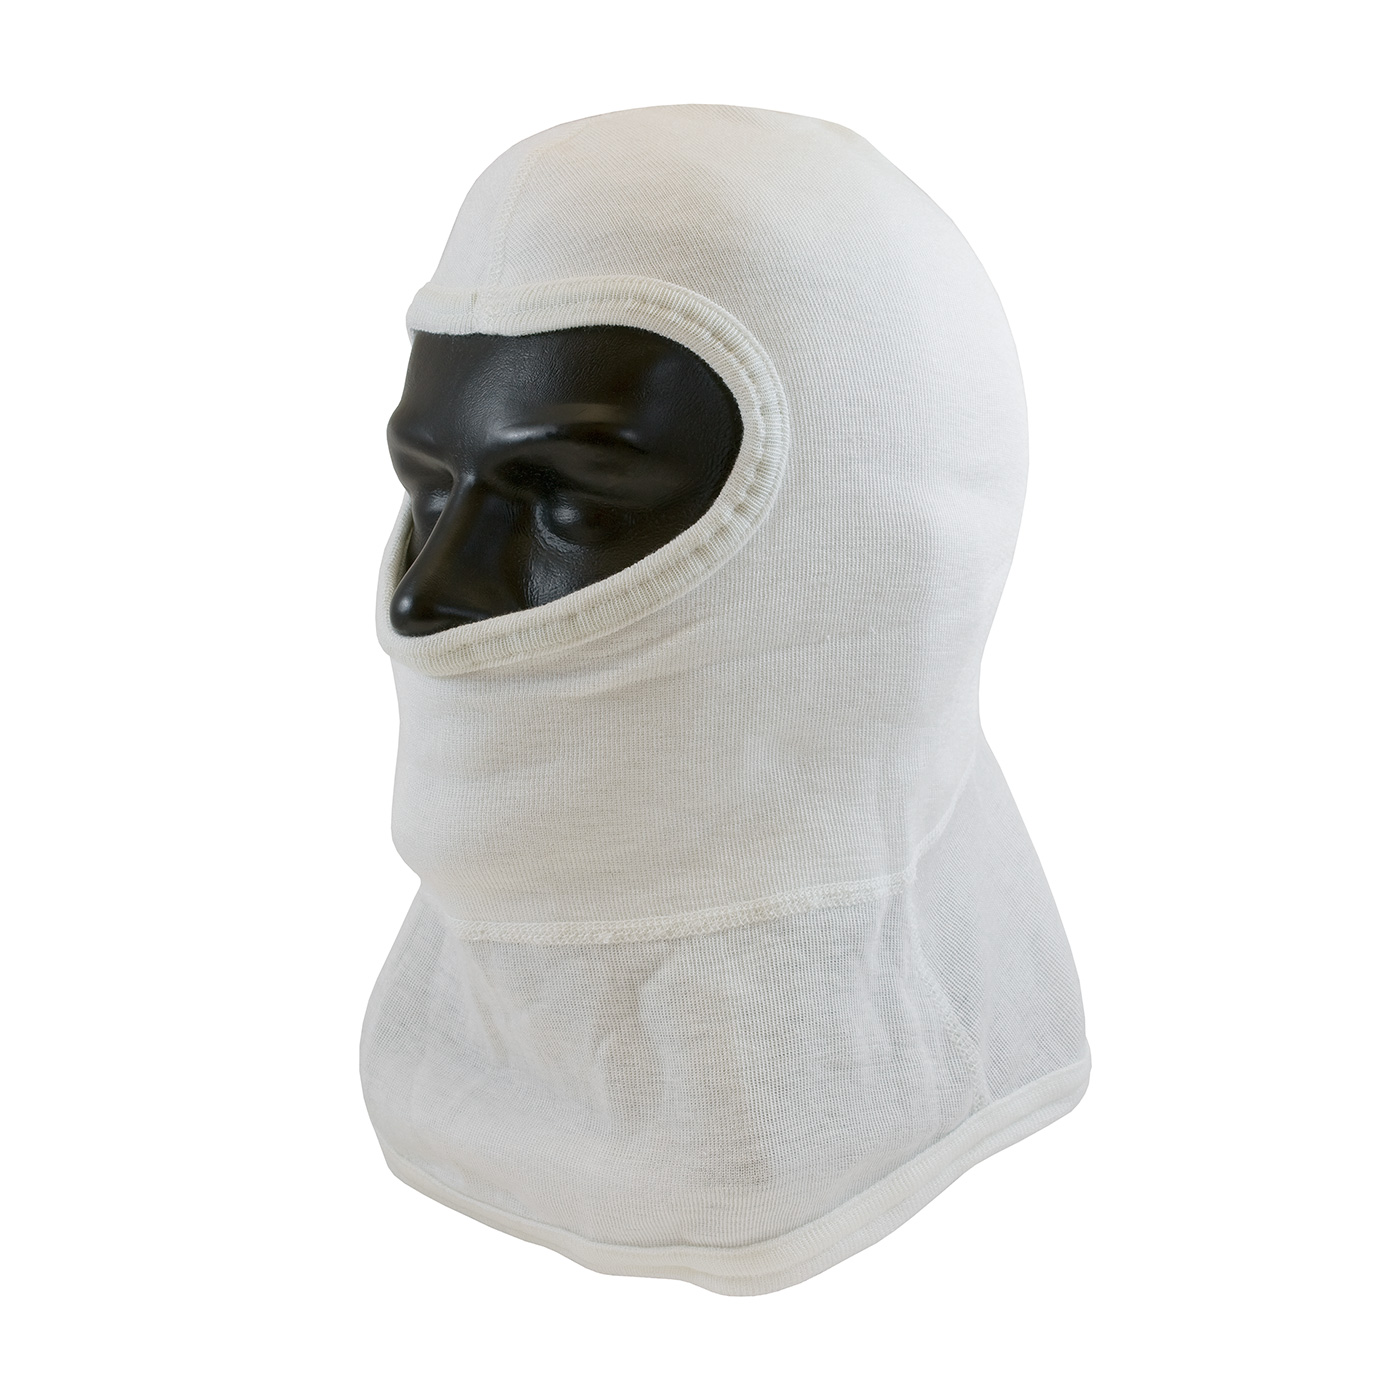 PIP® White Nomex® / Lenzing FR Hood with Straight-Cut Design - Full Face #906-2080NOL7B